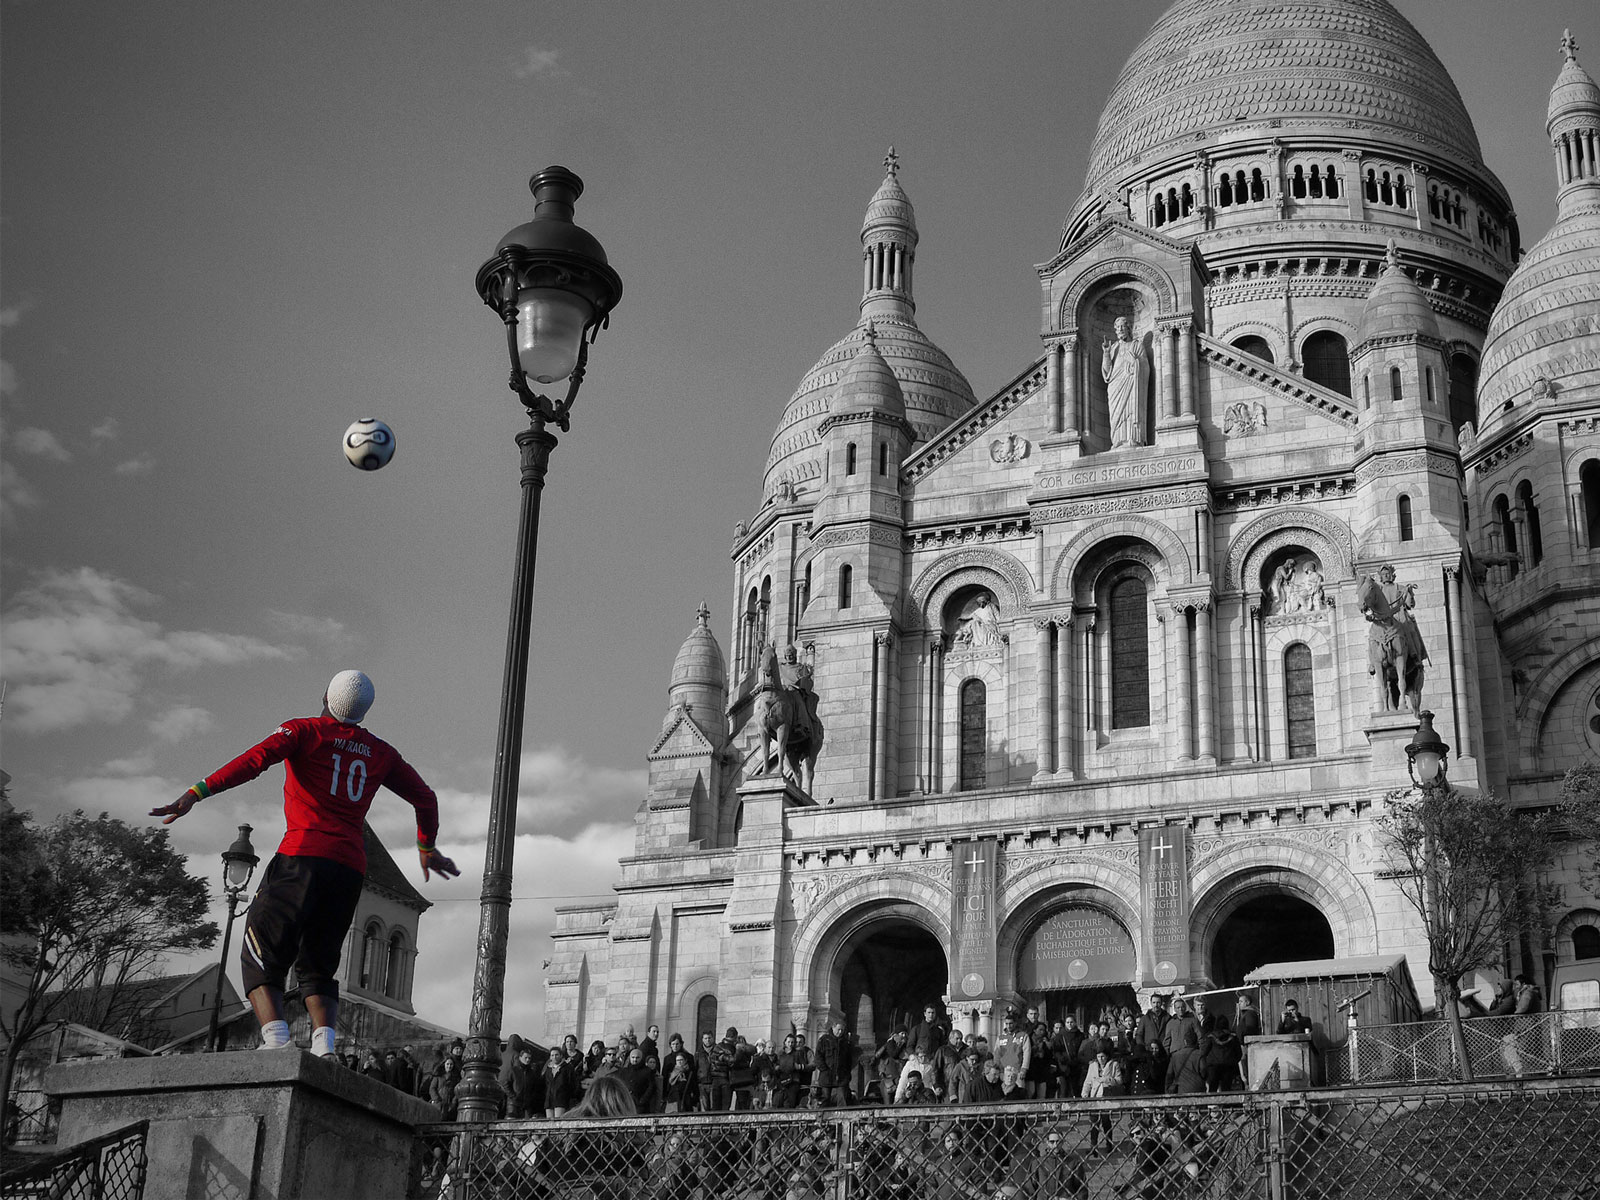 Freestyle Football Magic at the Sacré-Coeur - Paris, France